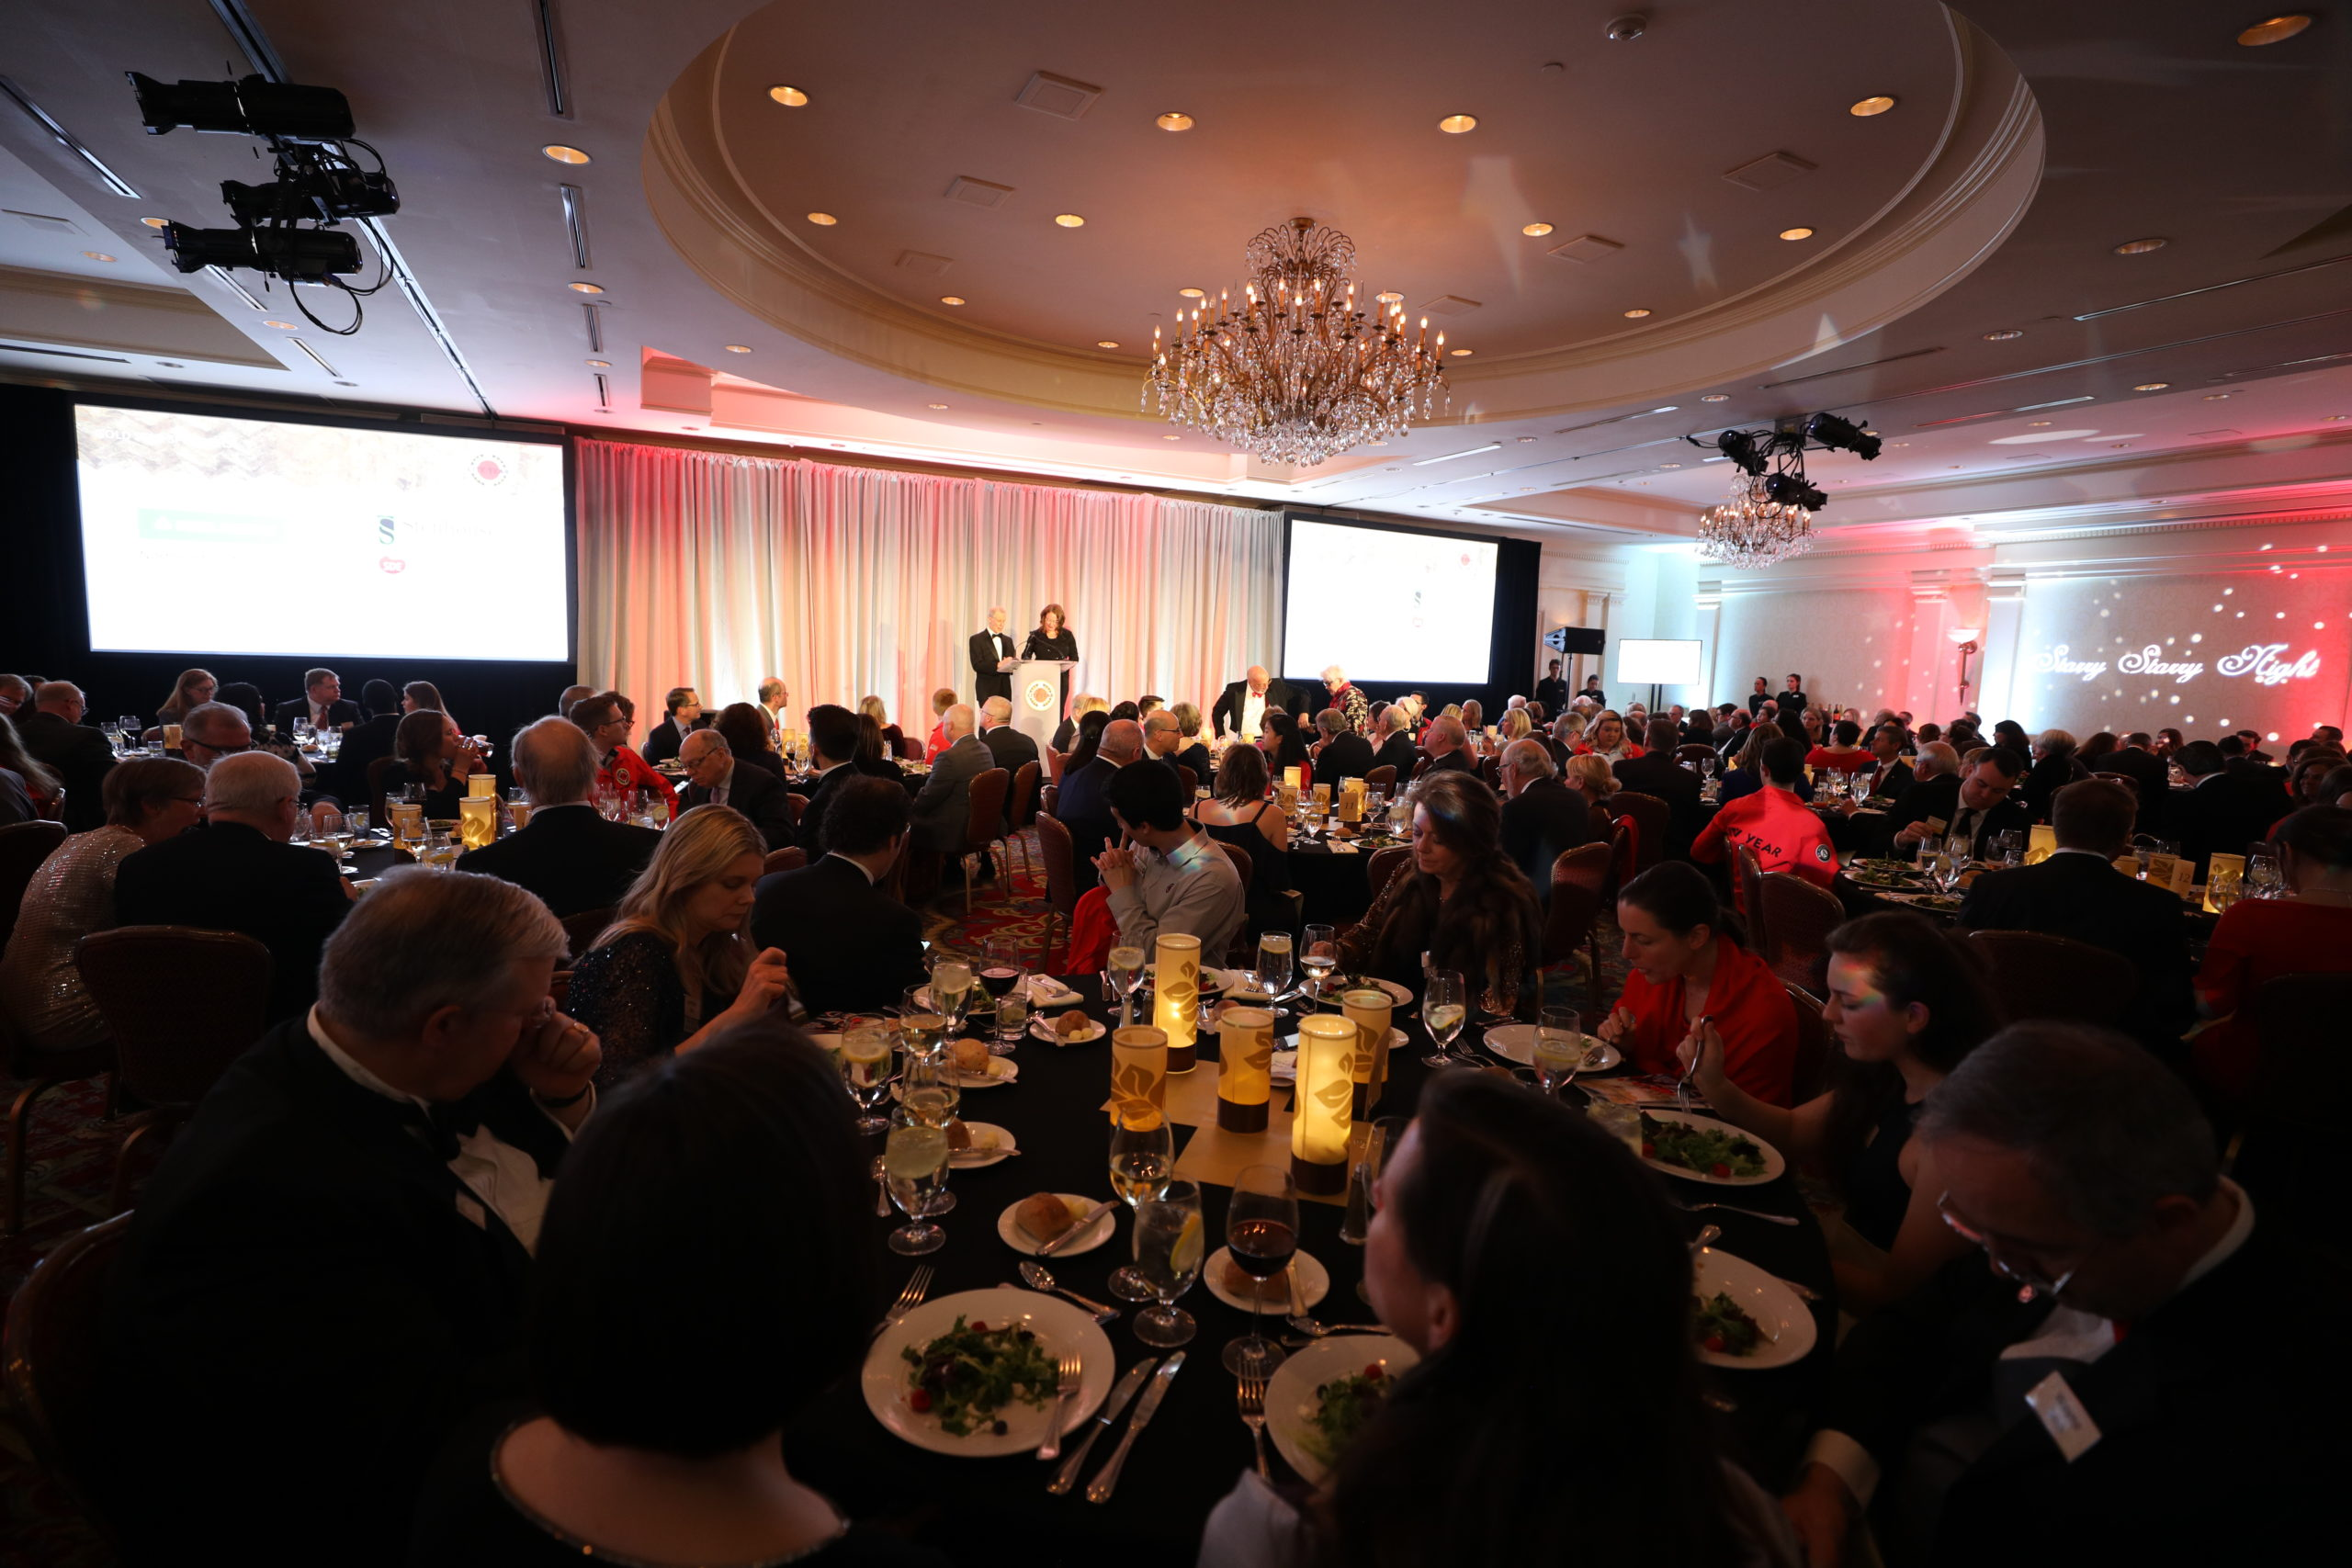 Guests enjoy dinner at Starry Starry Night